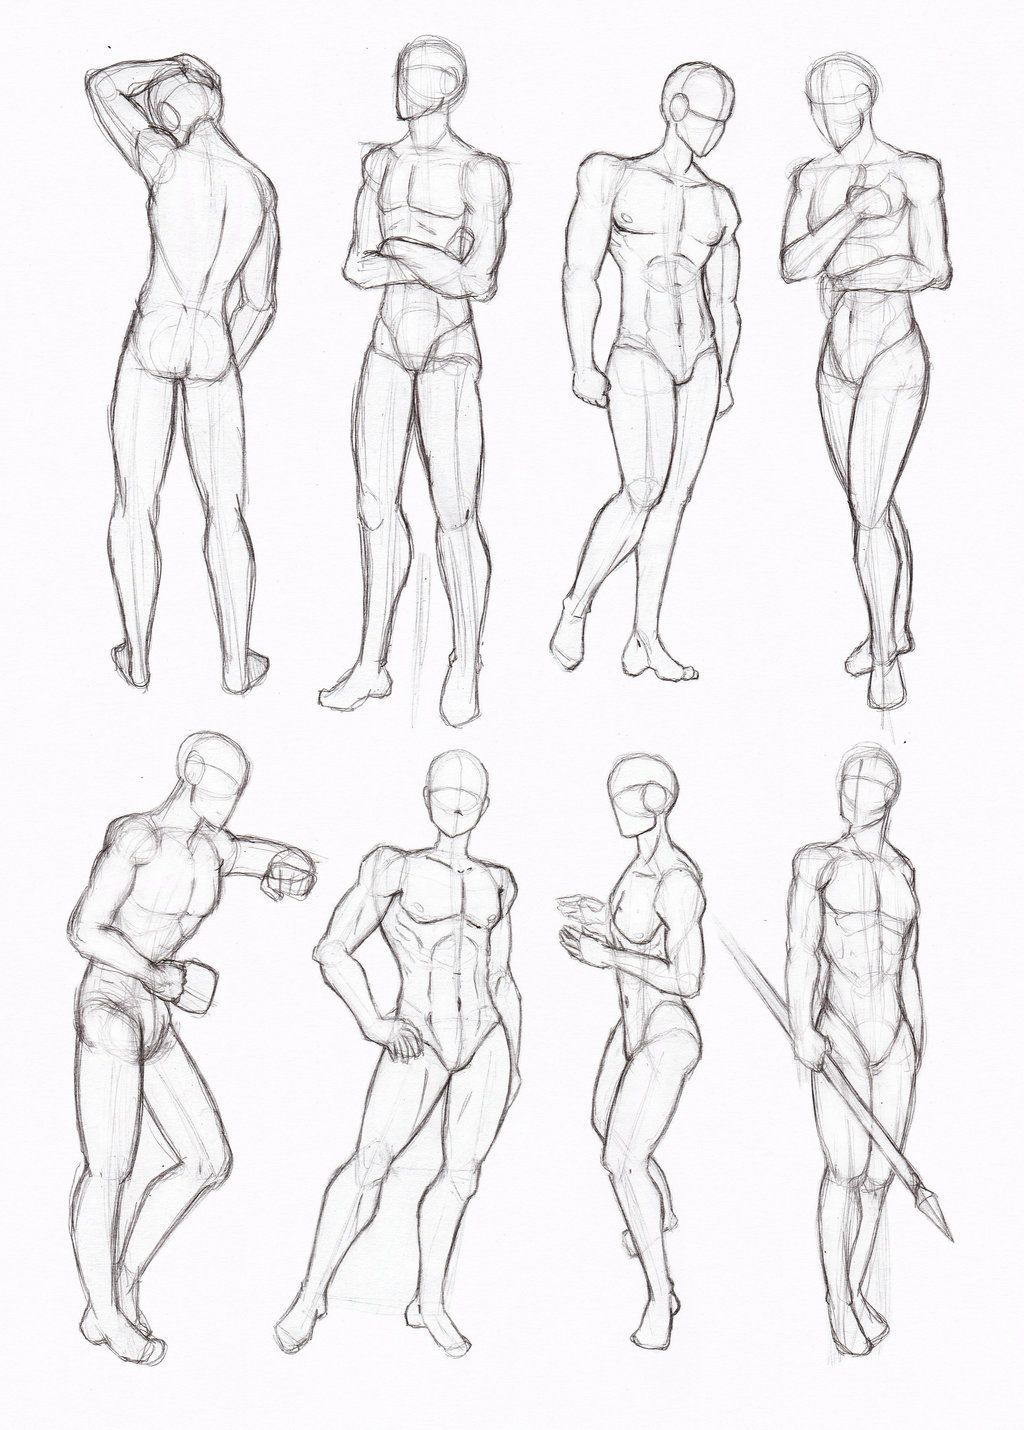 Drawing A Boy Body Drawing Of Face Wid Body Boy Drawing Of Sketch Drawings Inspiration Figure Drawing Poses Drawing Poses Male Art Reference Poses